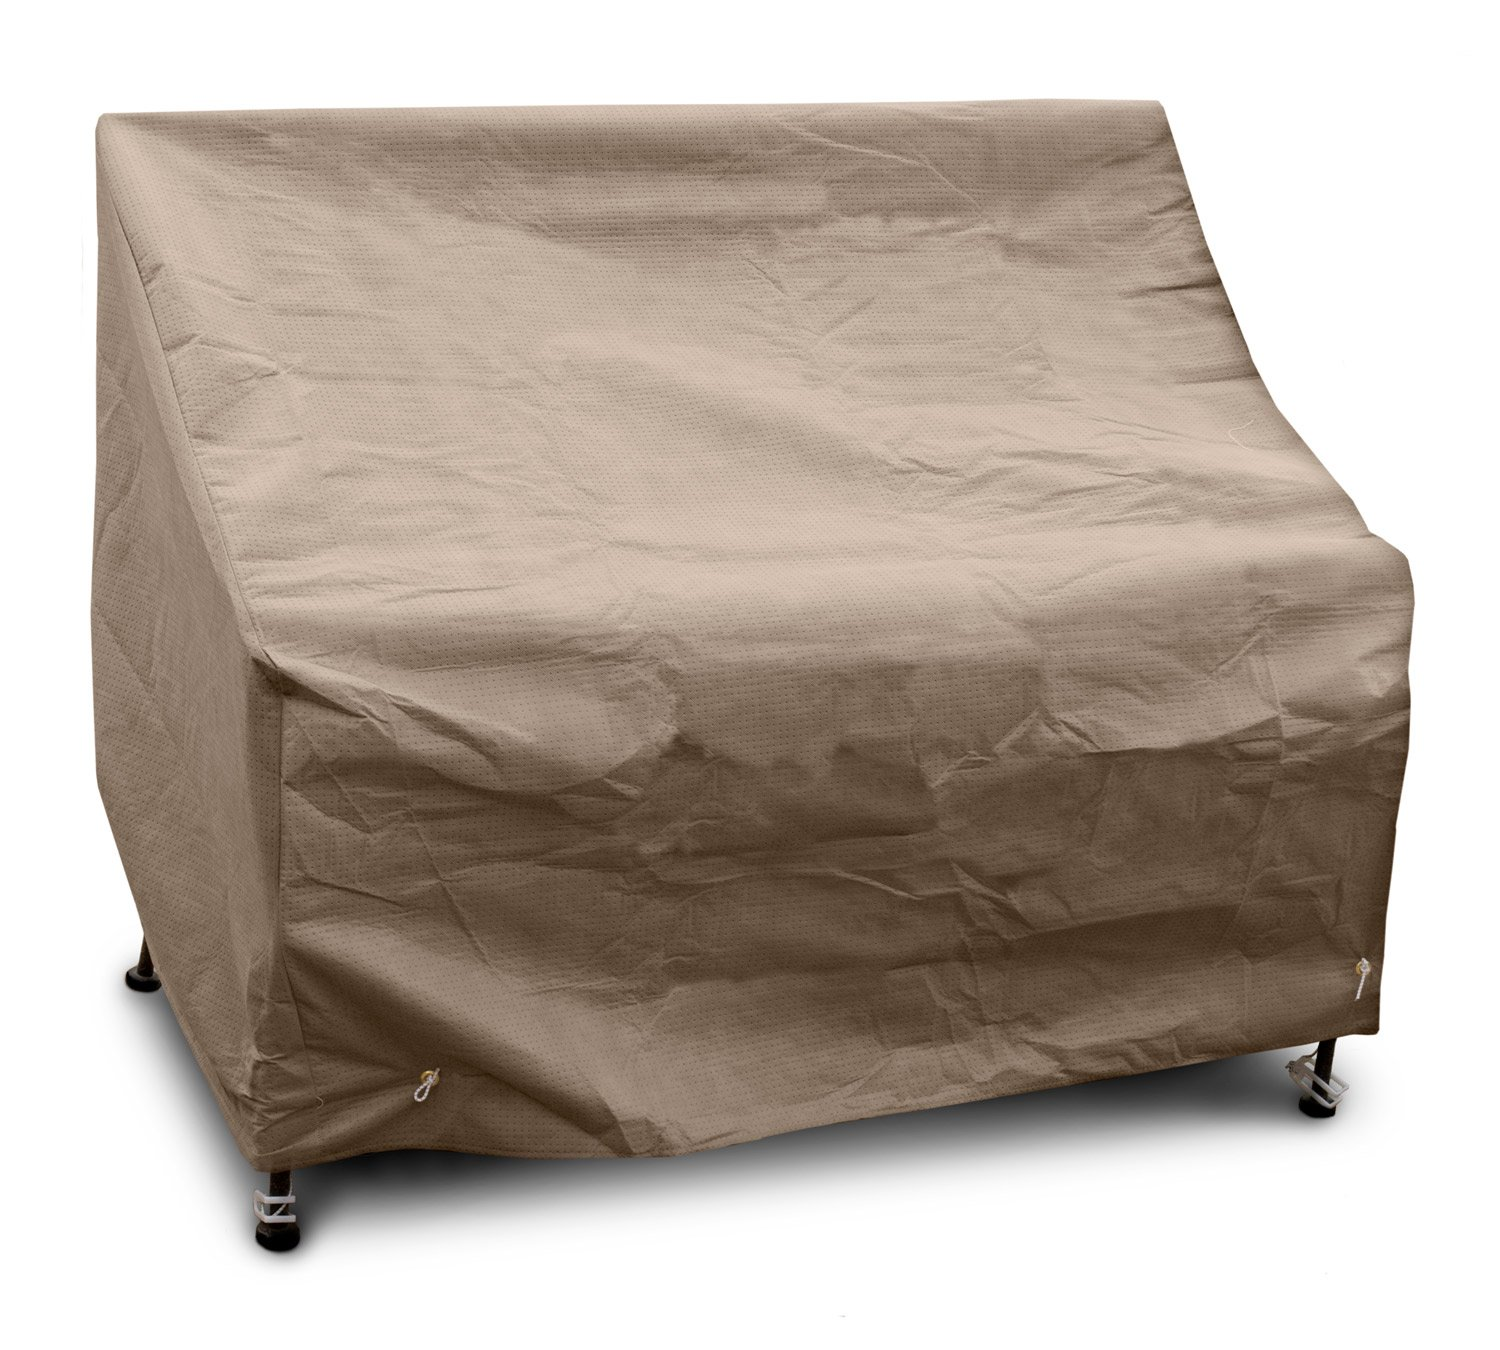 KoverRoos III 34203 5-Feet Bench/Glider Cover, 63-Inch Width by 28-Inch Diameter by 37-Inch Height, Taupe by KOVERROOS